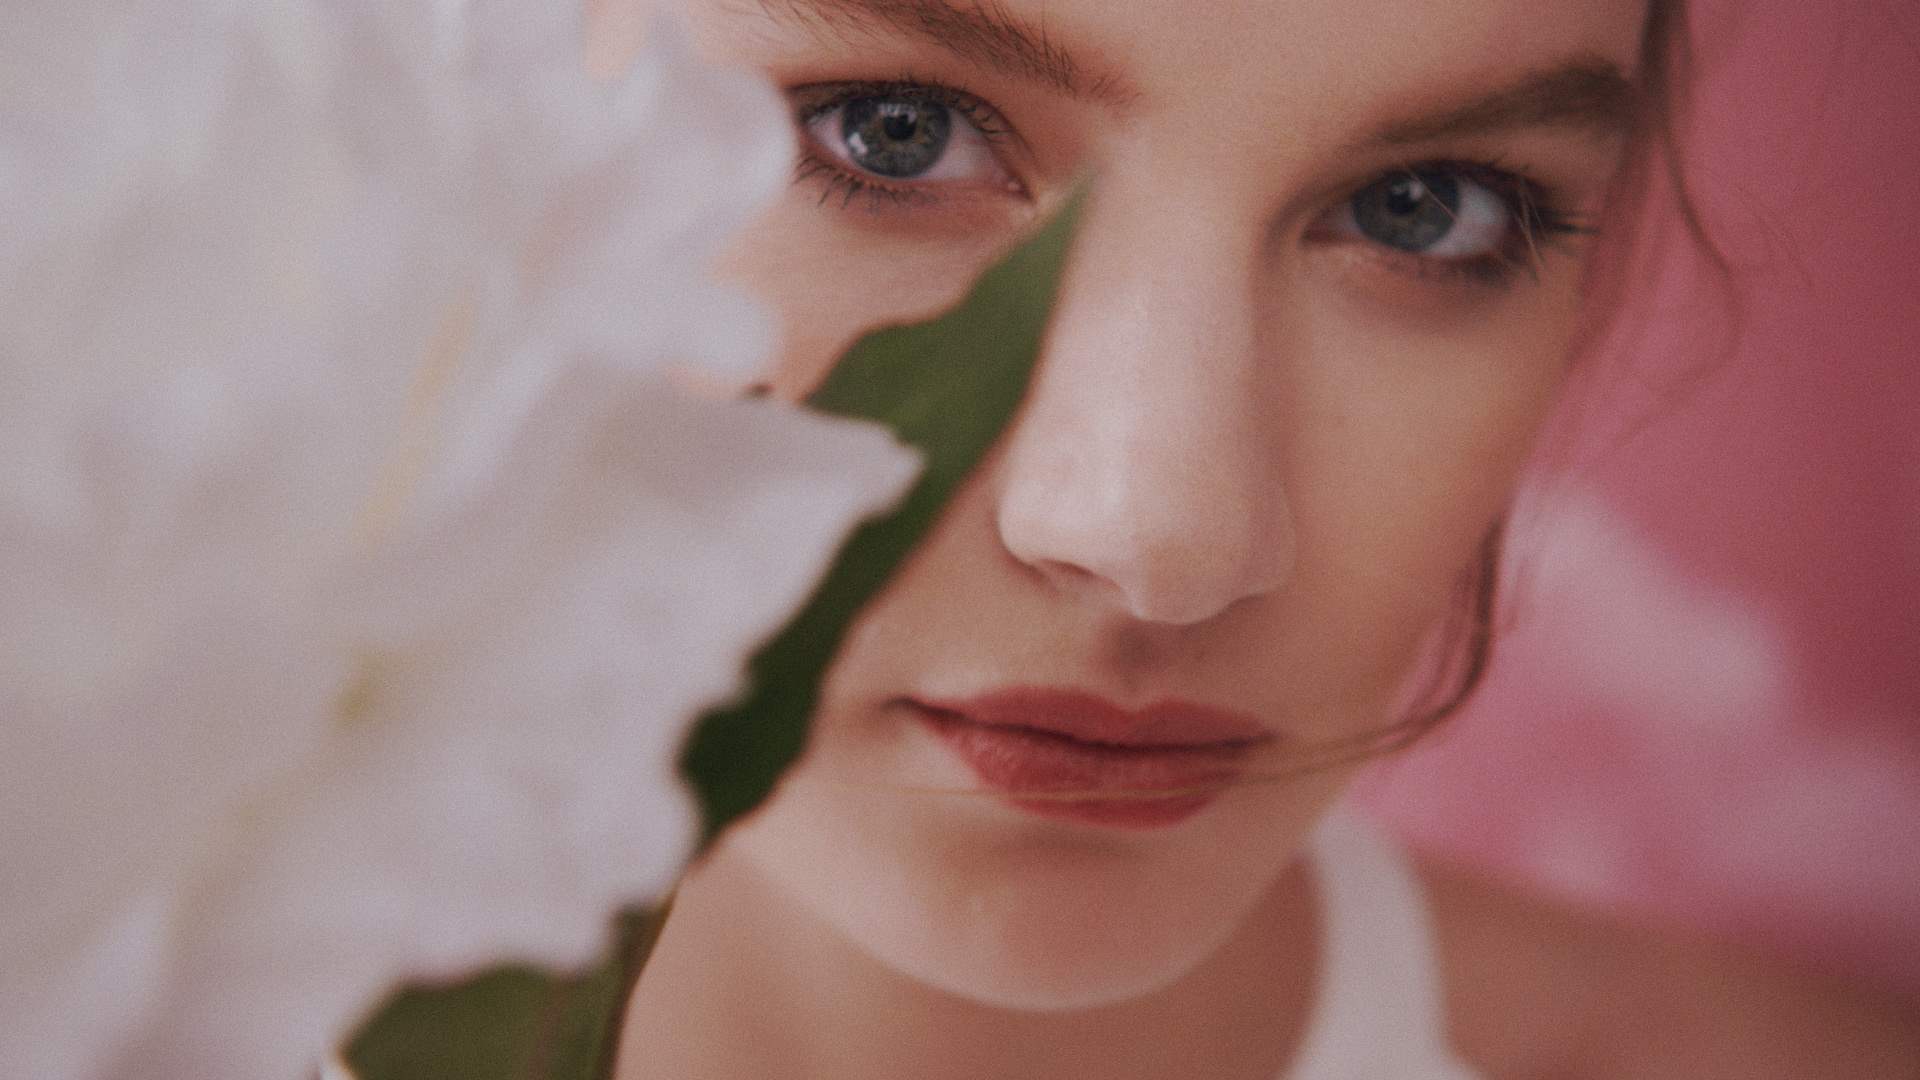 Ted Baker 'Cottoned On' - Produced by Nuuksio Films for Ted Baker